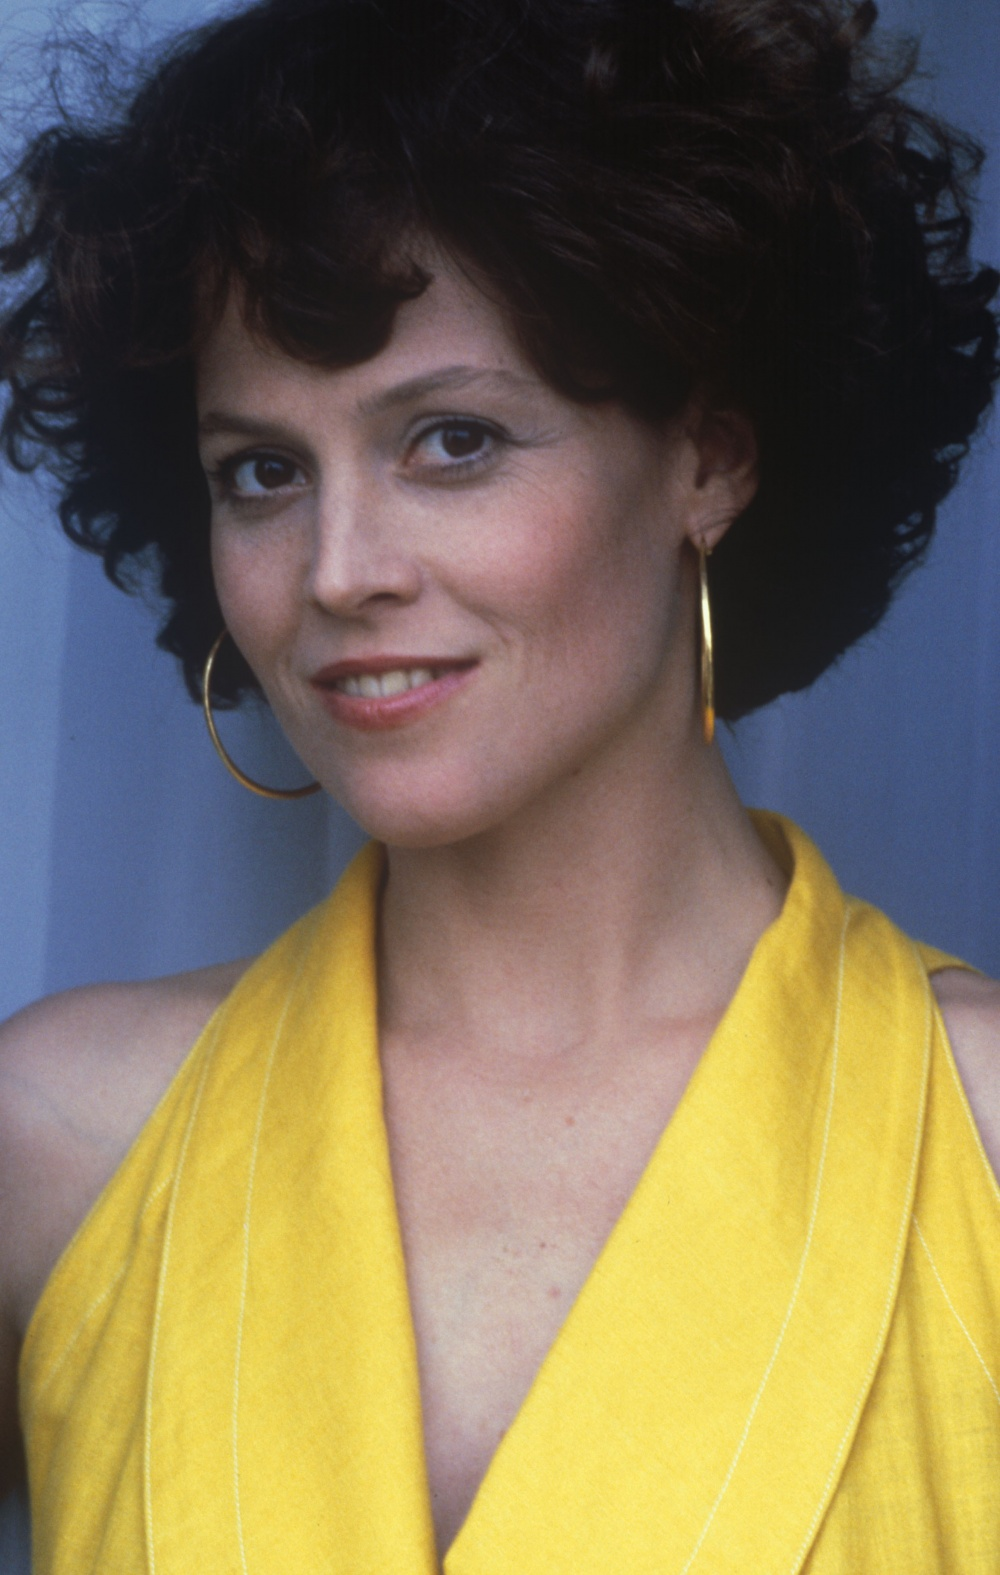 Sigourney Weaver Filmography And Biography On Movies Film: Sigourney Weaver On Pinterest